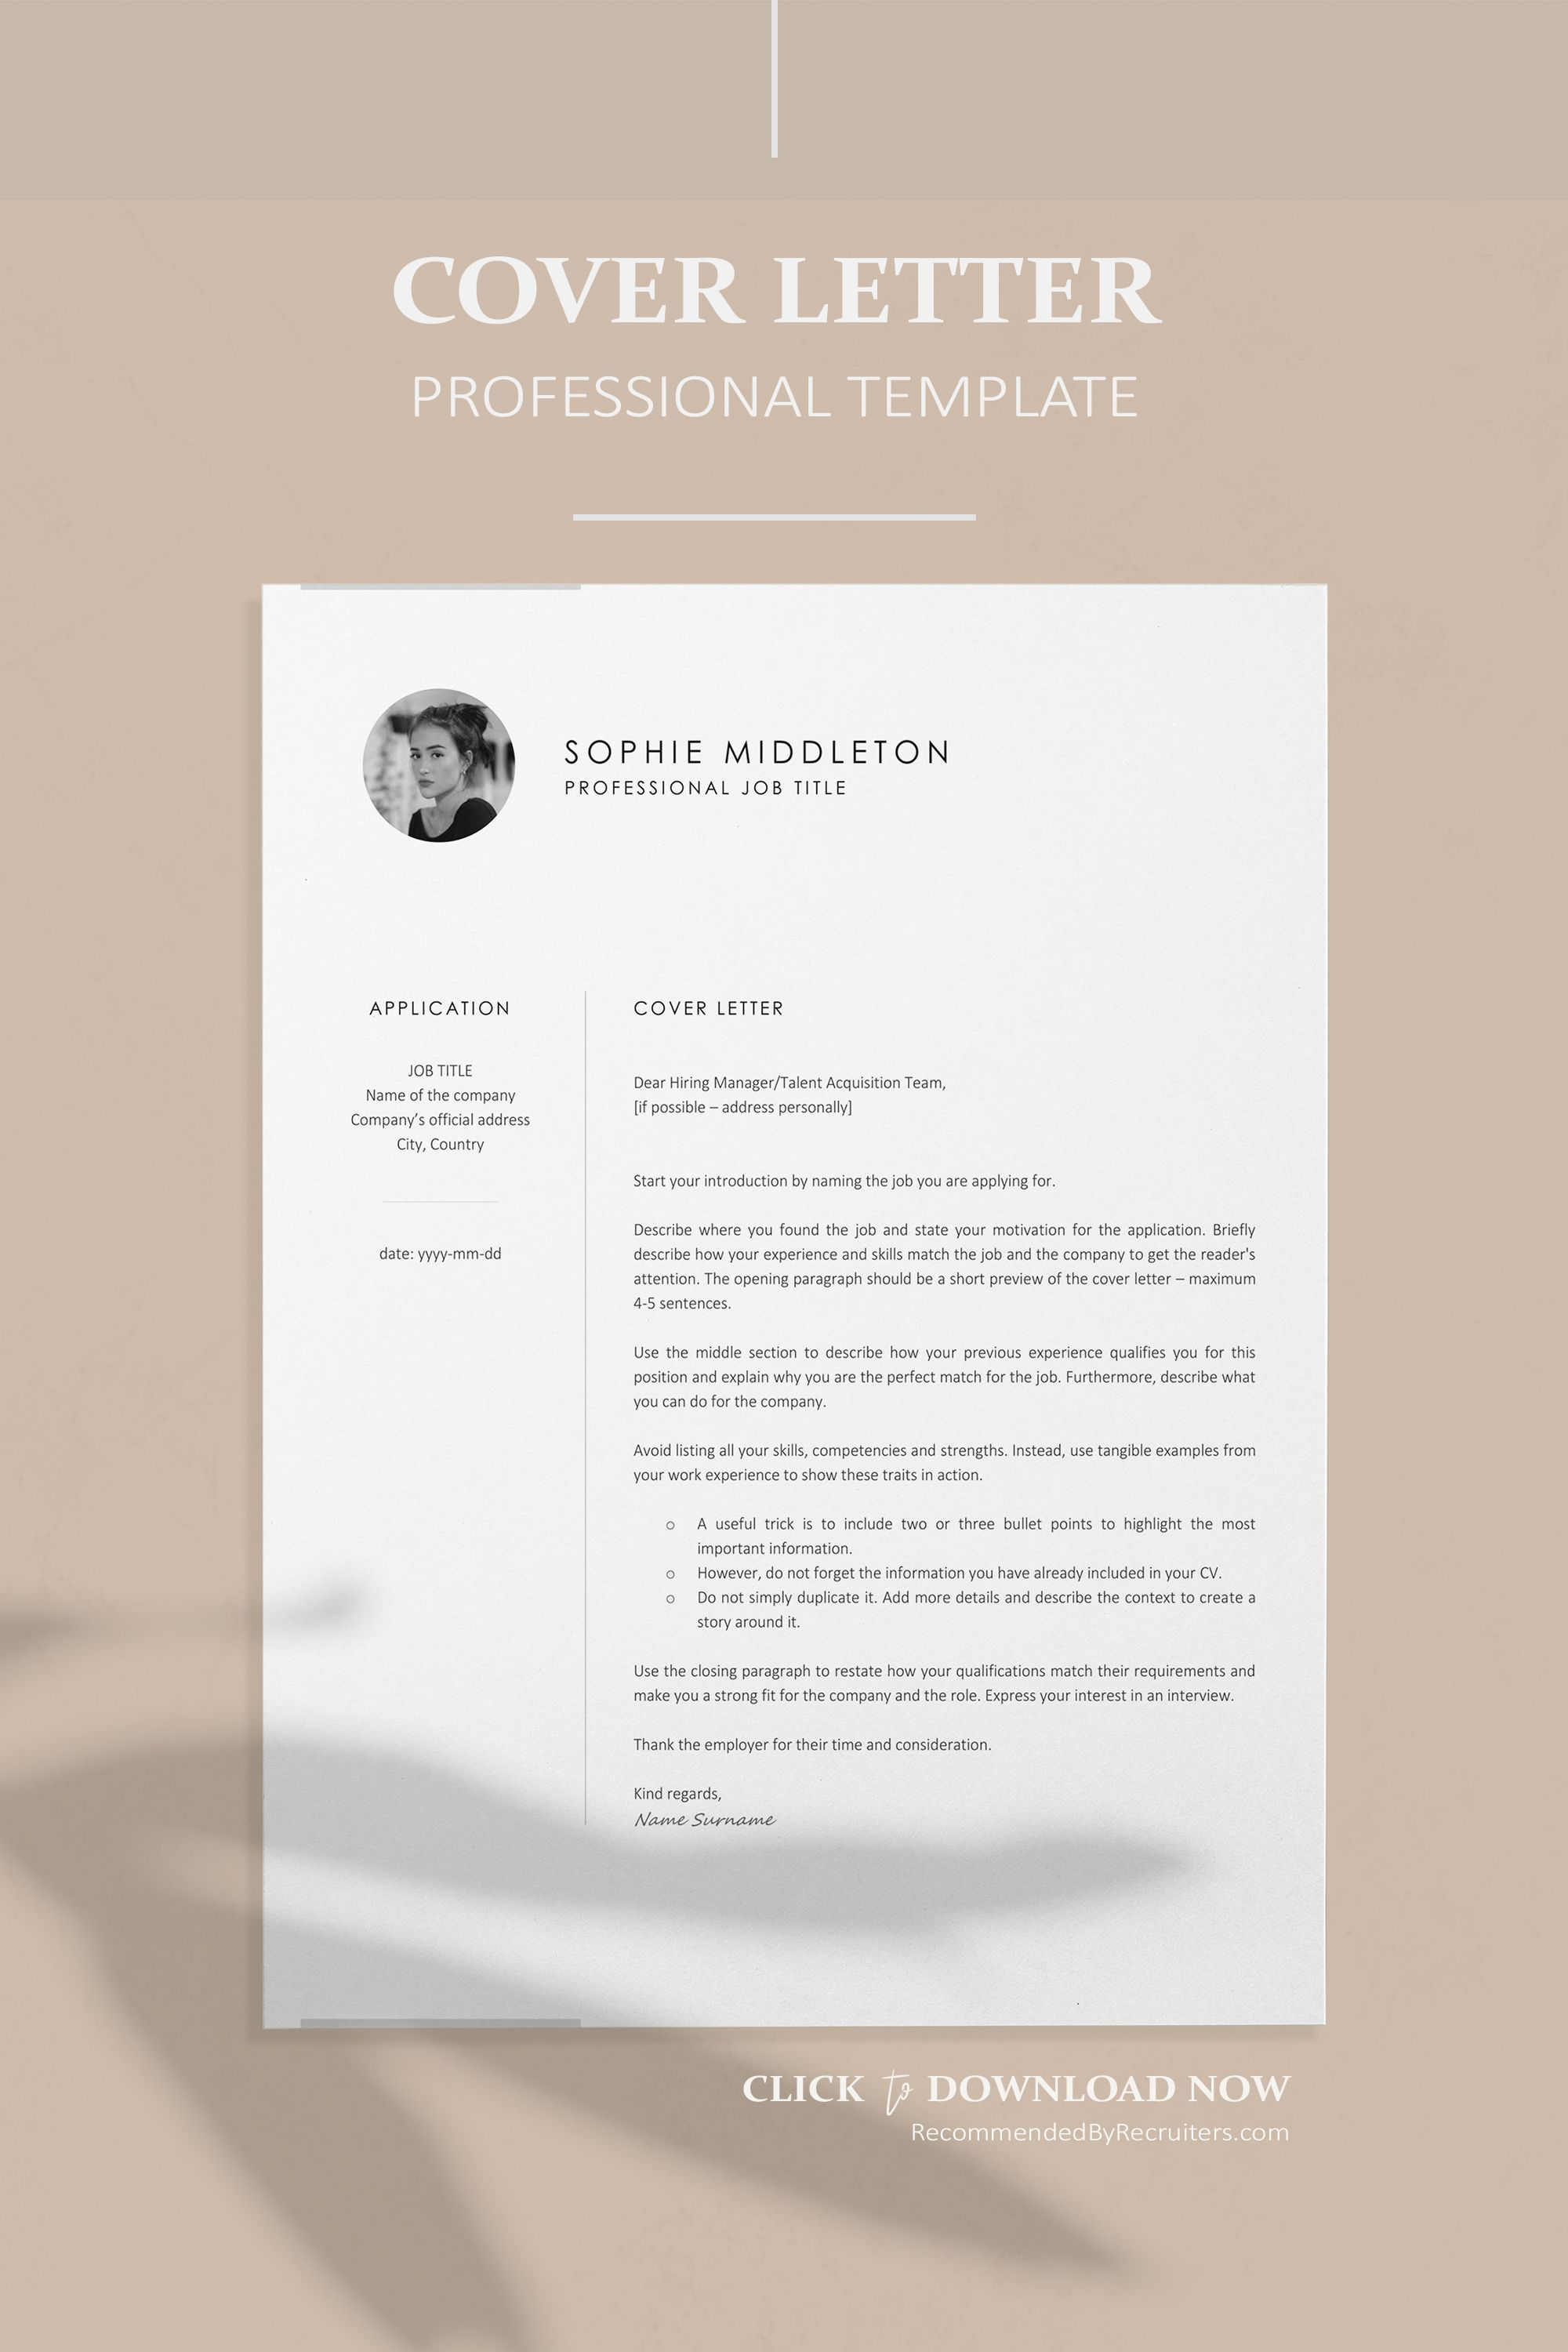 001 Imposing Download Cv And Cover Letter Template Sample  TemplatesFull